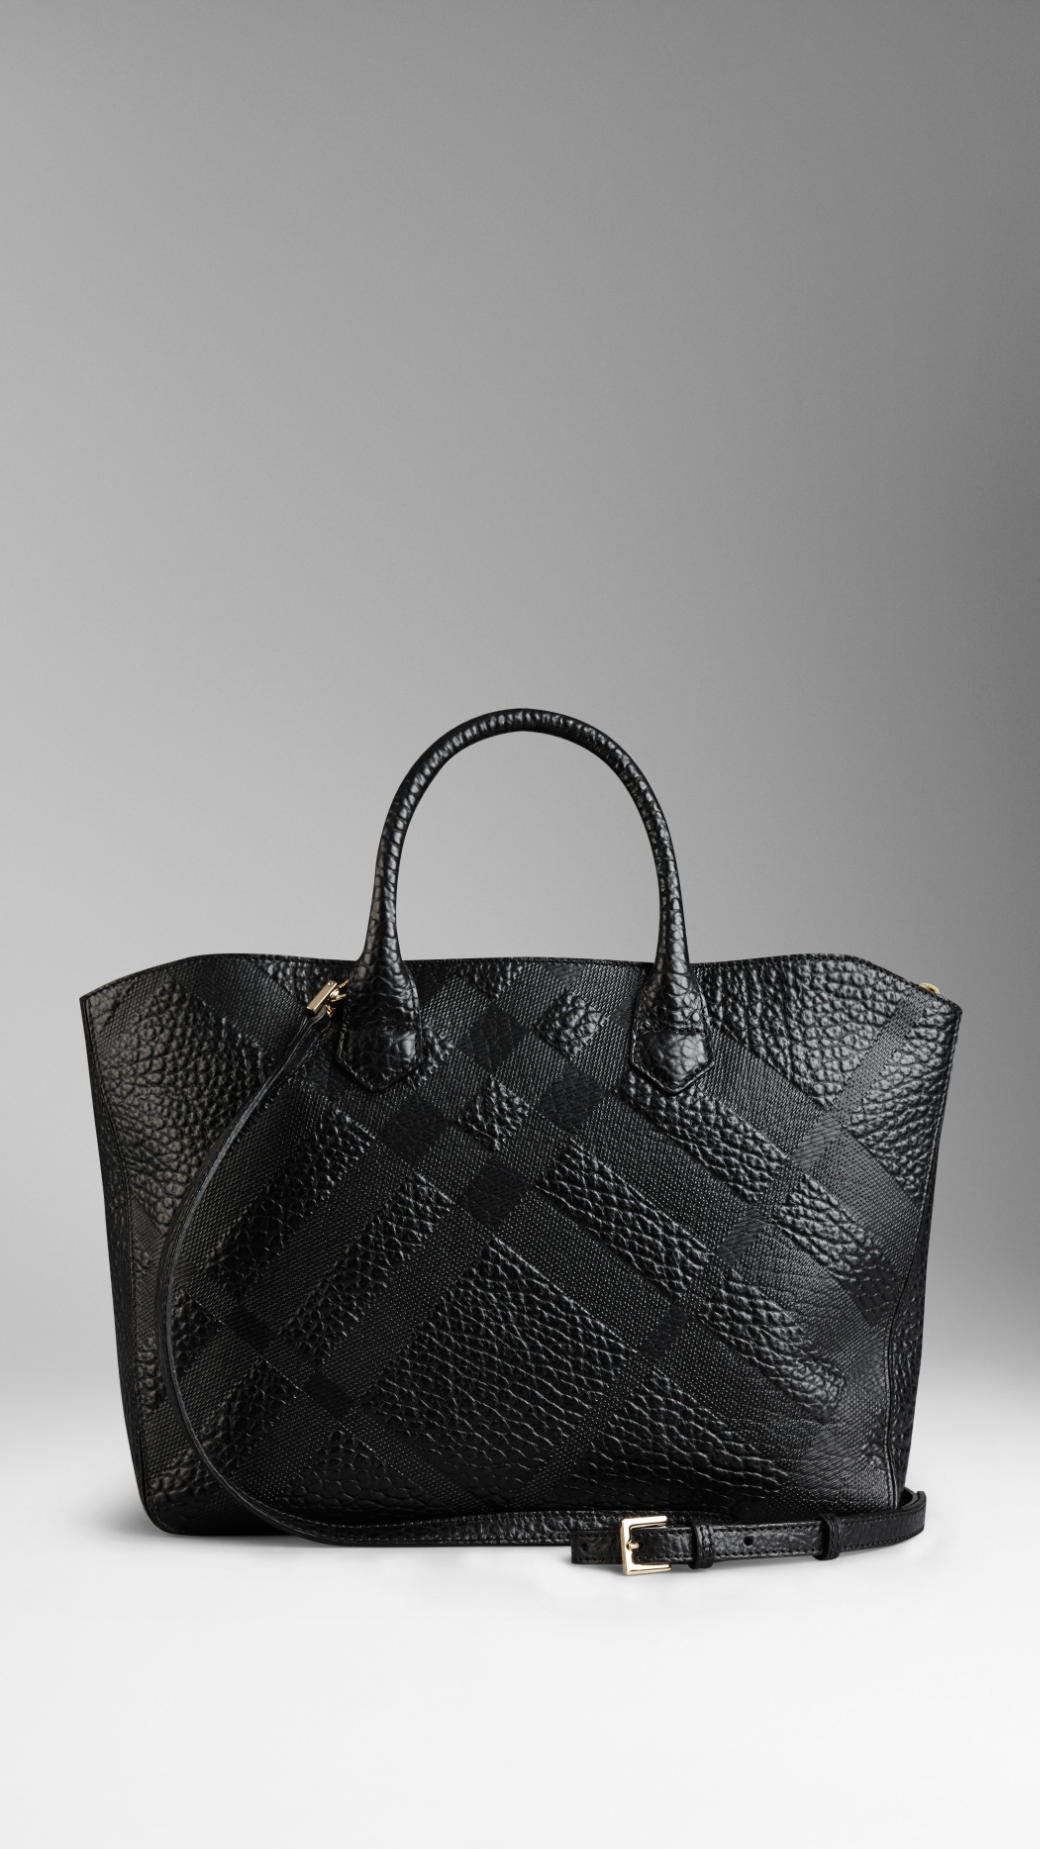 Burberry Medium Embossed Check Leather Tote Bag In Black